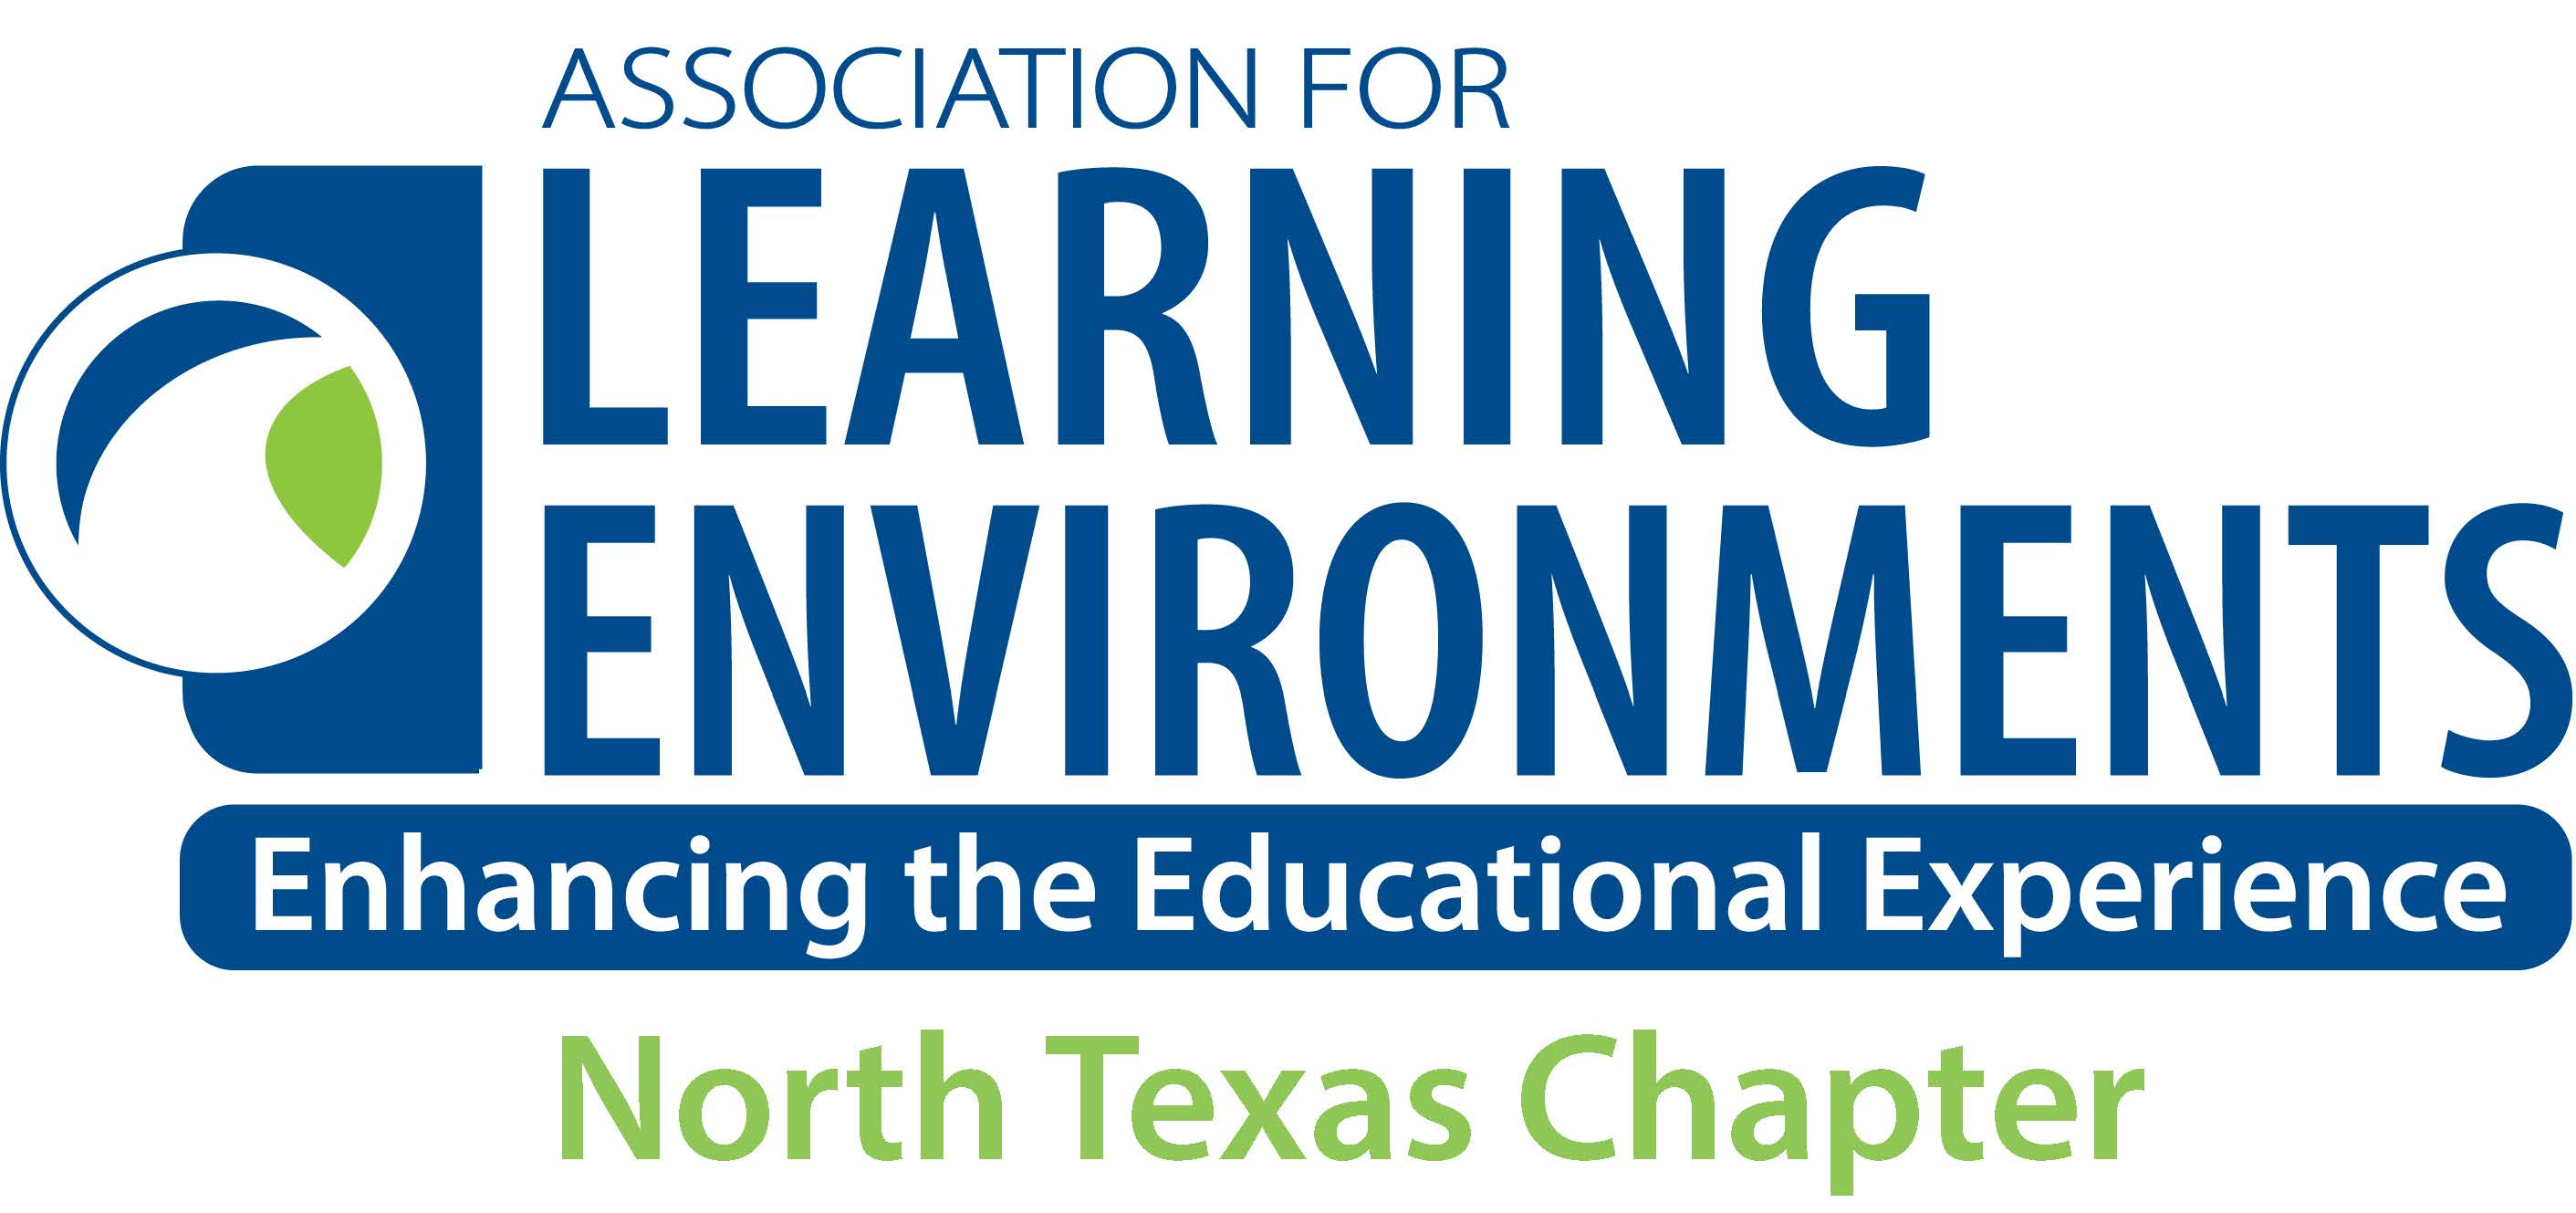 2019 North Texas Chapter Meeting - February